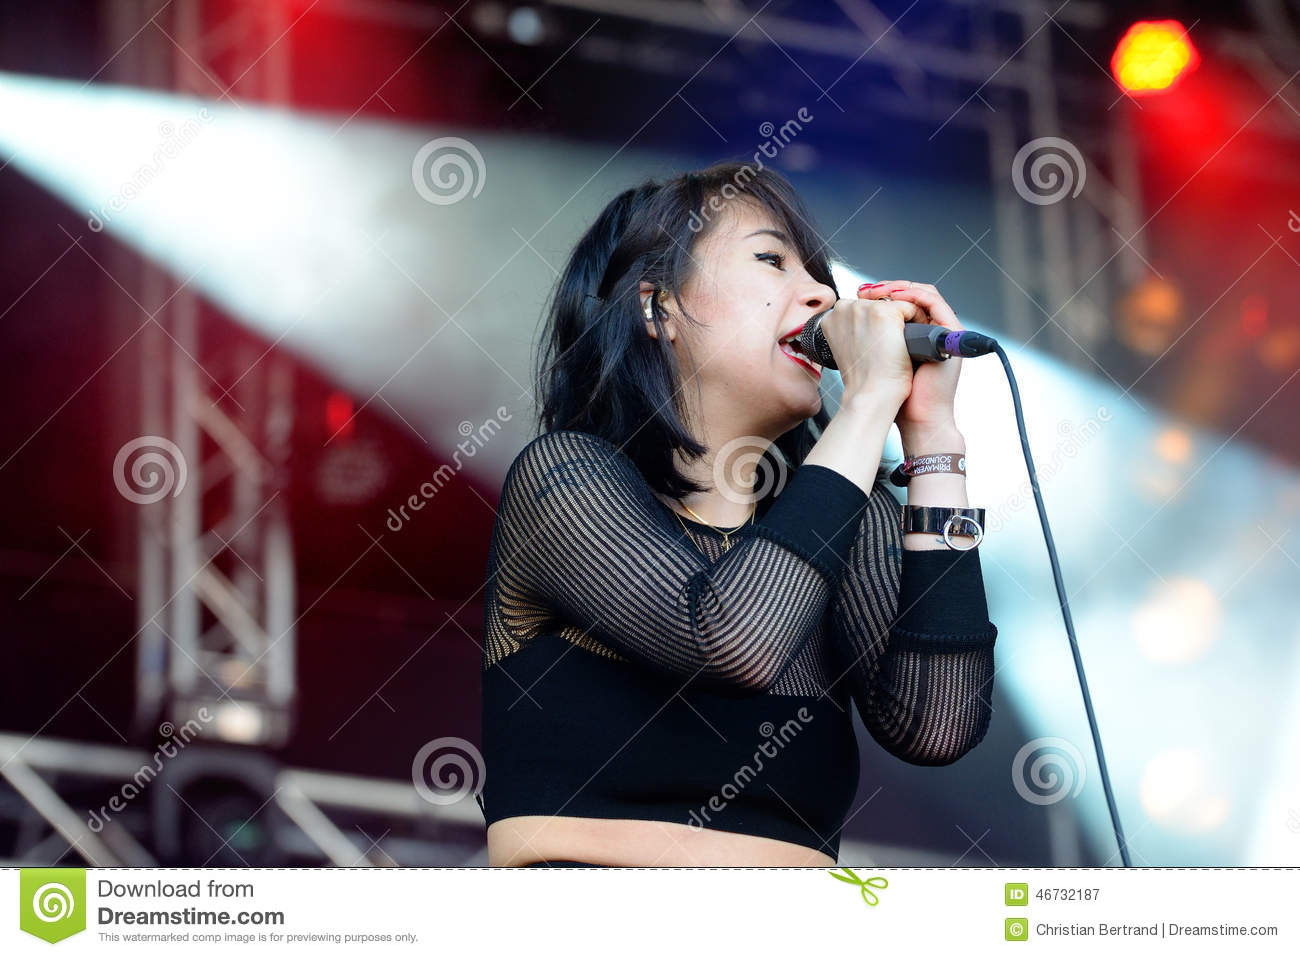 rock sound single girls What are some rock bands with female lead singers gore gore girls - rock gram rabbit - alternative try not to fall in love with the sound of her voice.